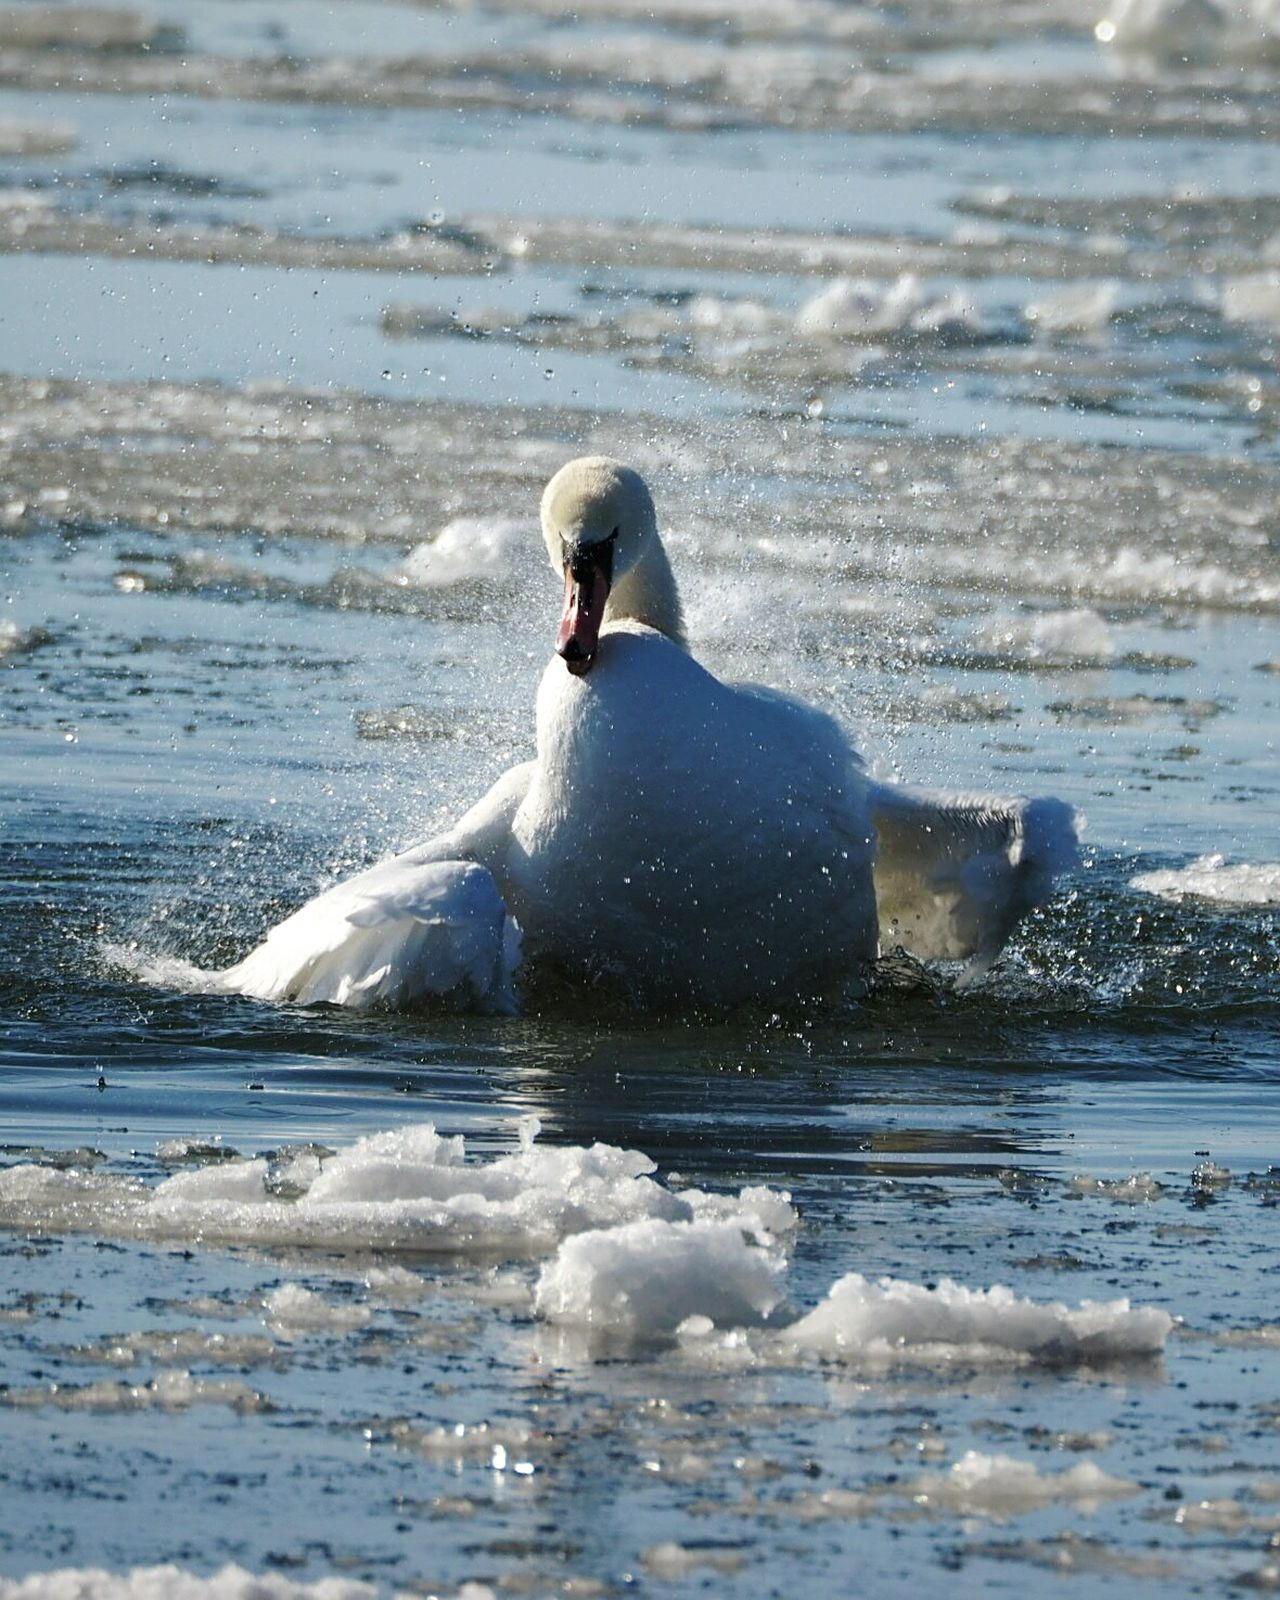 Water Sea Swimming Nature One Animal Animal Themes Frozen Sea Sea Bird Bathing Swan Spread Wings Spreading Wings Swan Winter Nature Outside Water Drops Splashing In Bath Splashing Swimming Animal Sunlight Beautiful Nature Close-up Full Length Animal Wildlife Animals In The Wild Bird